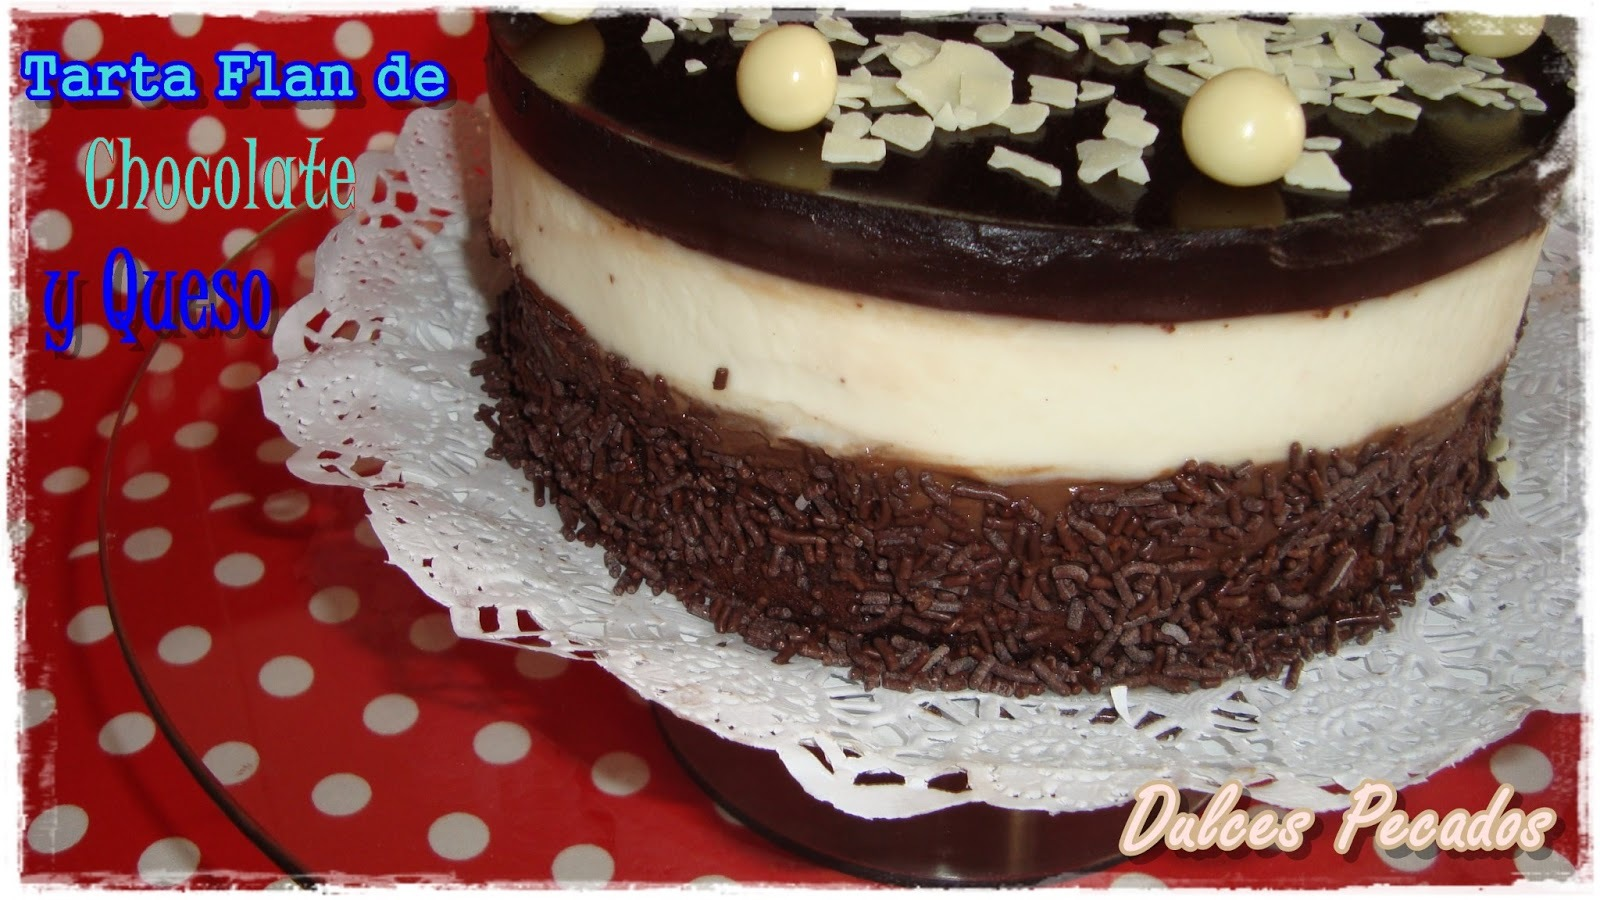 Tarta flan de Chocolate y Queso